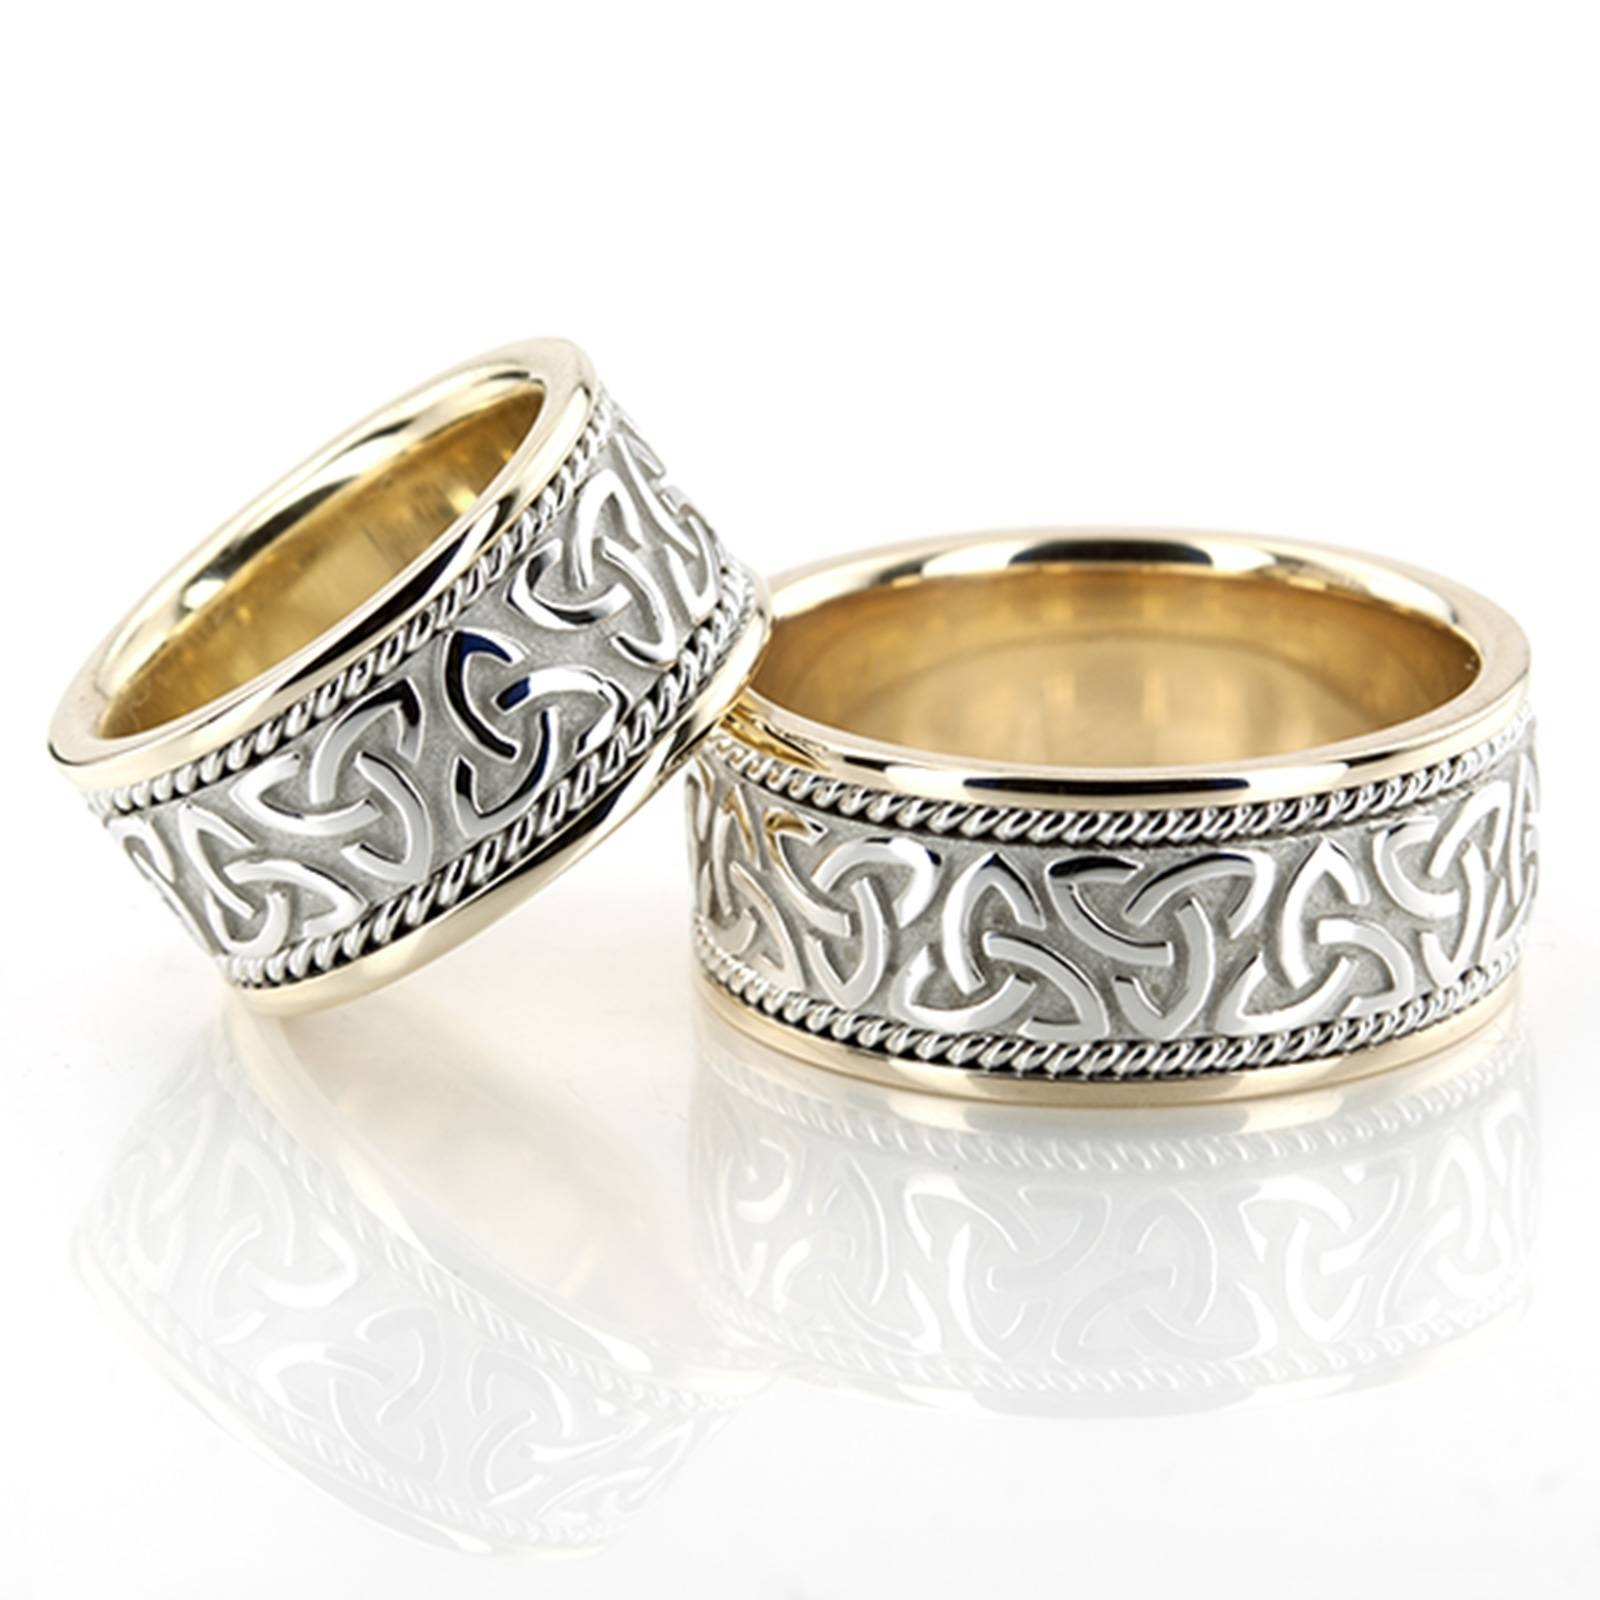 Wedding Rings : Engagement Rings Uk Gaelic Jewelry Claddagh Intended For Silver Celtic Engagement Rings (View 14 of 15)